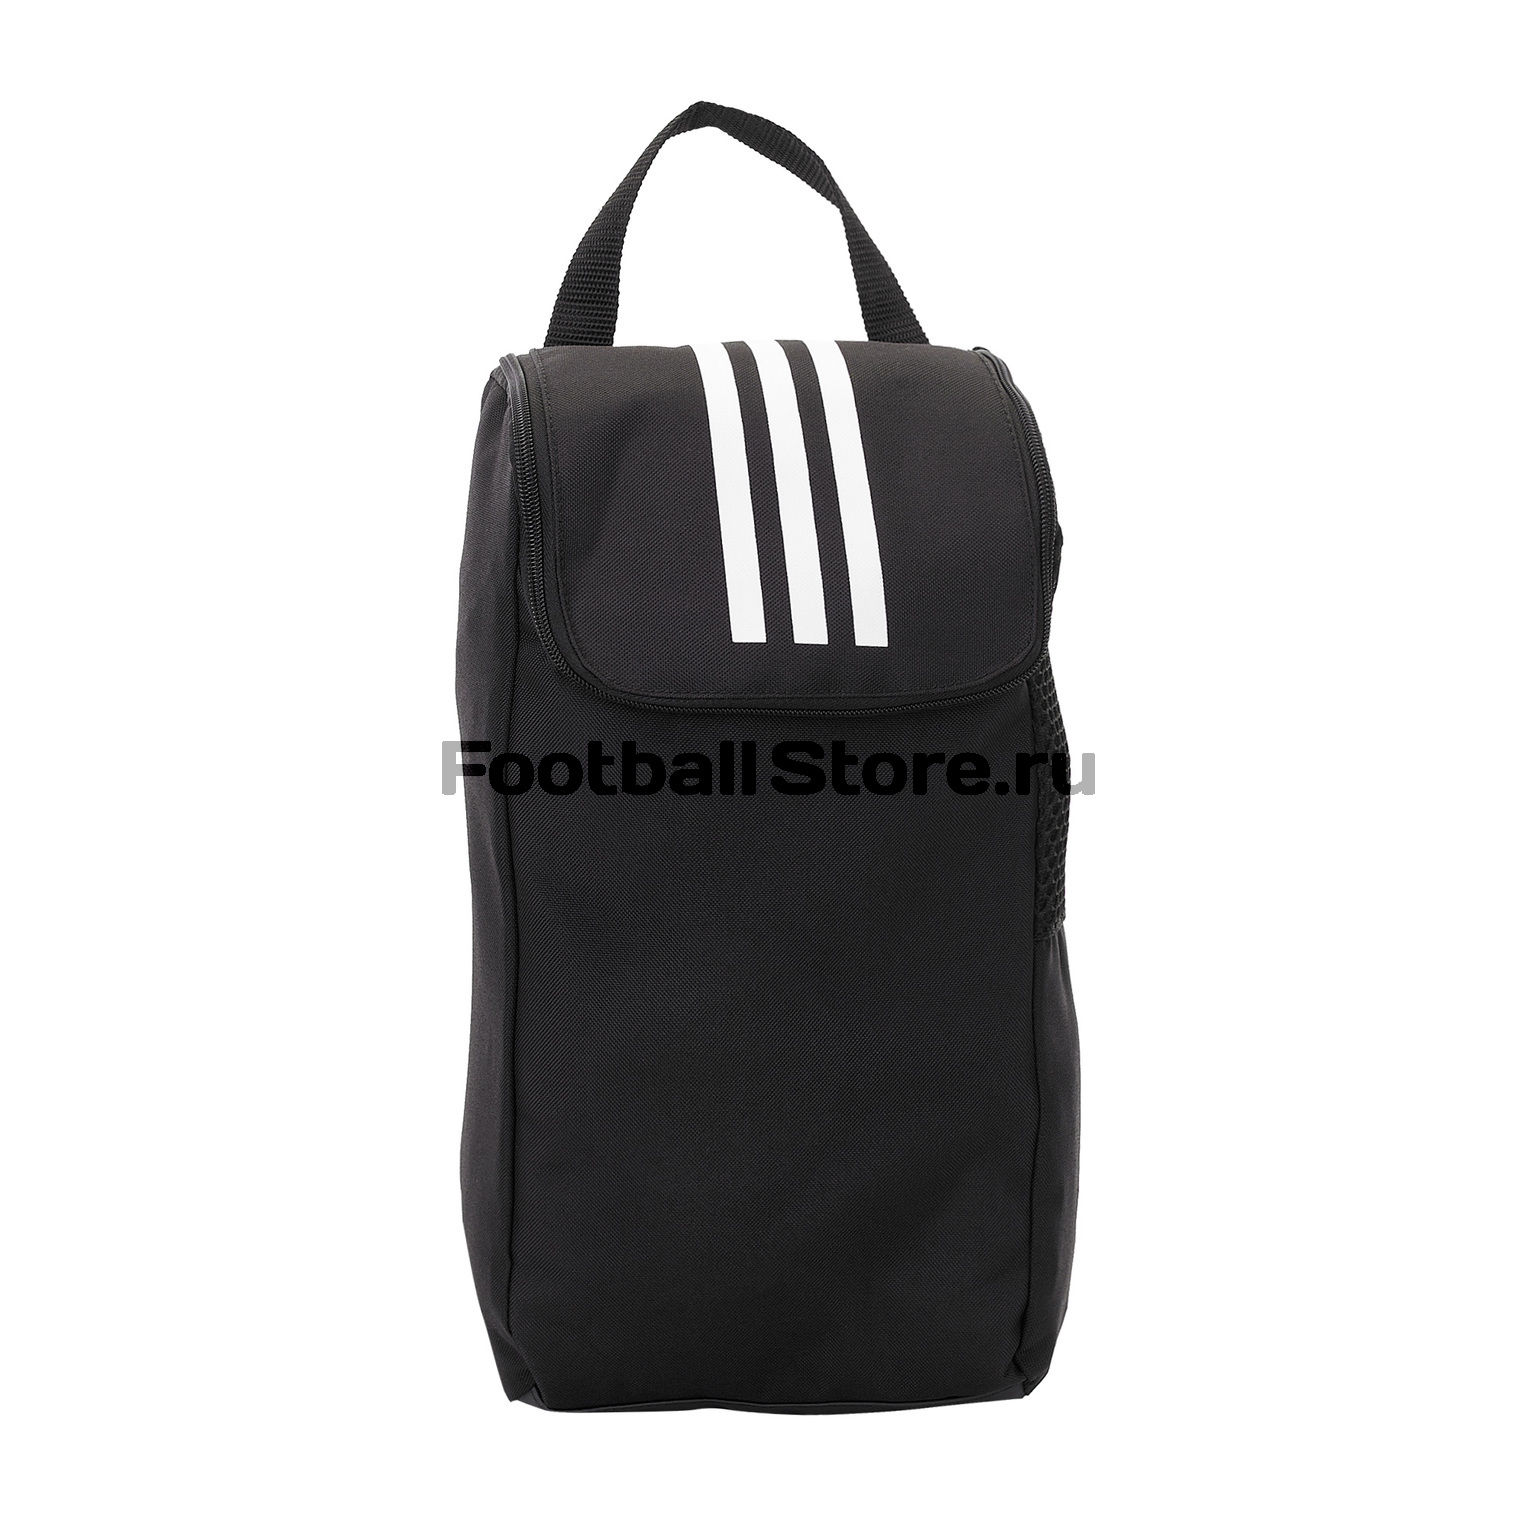 Сумка для обуви Adidas Tiro SB DQ1069 рюкзак adidas tiro bp bs4761